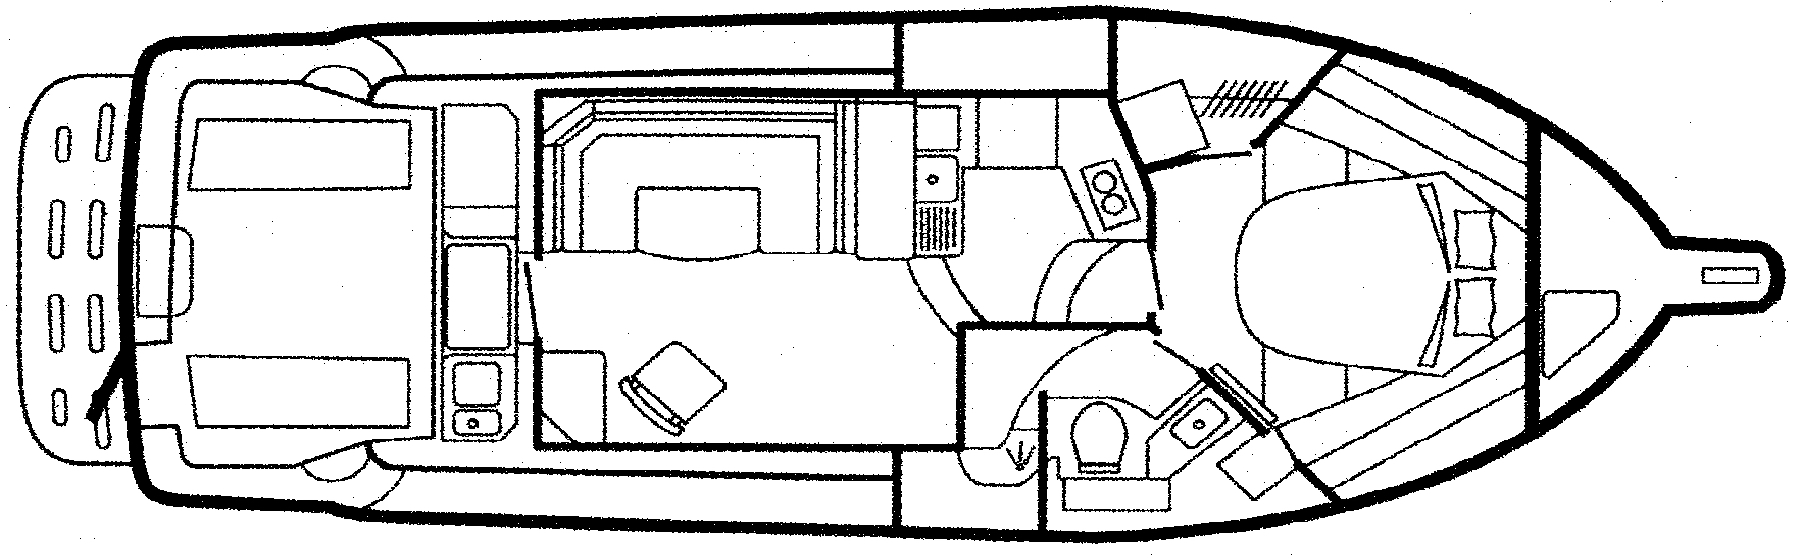 33 Convertible Floor Plan 1